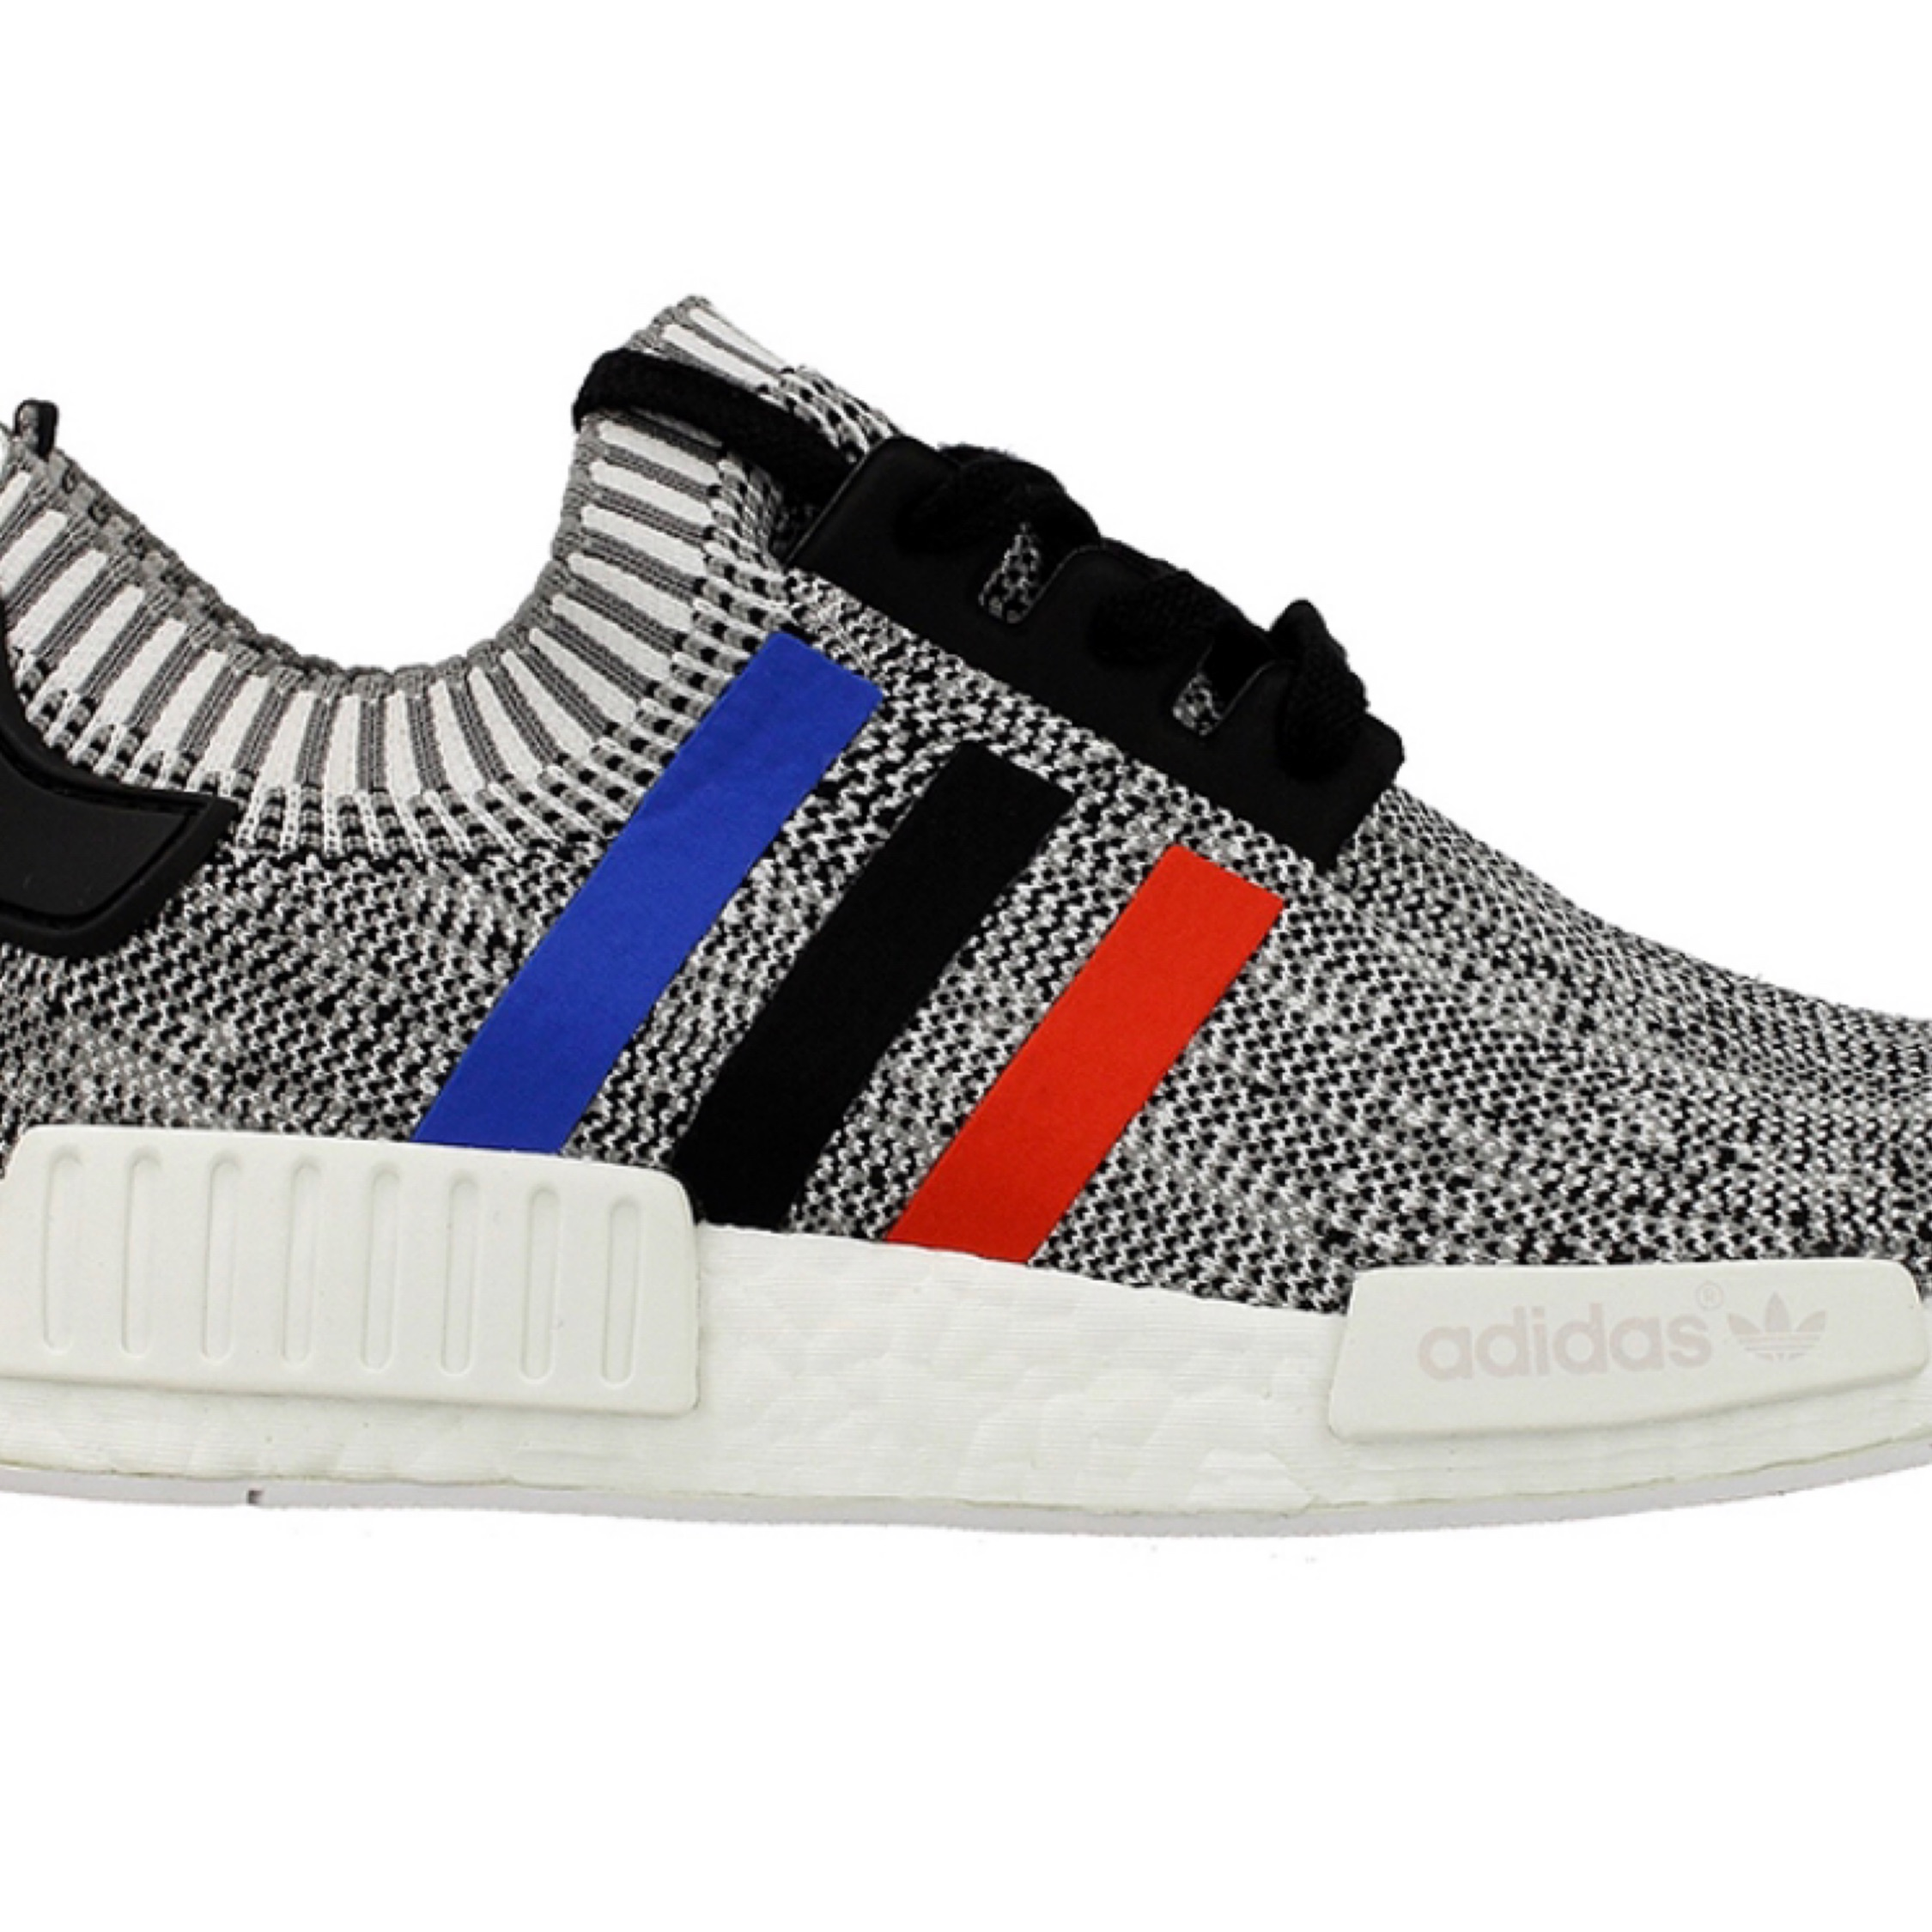 online store f3959 0320f Nmd Tricolor!